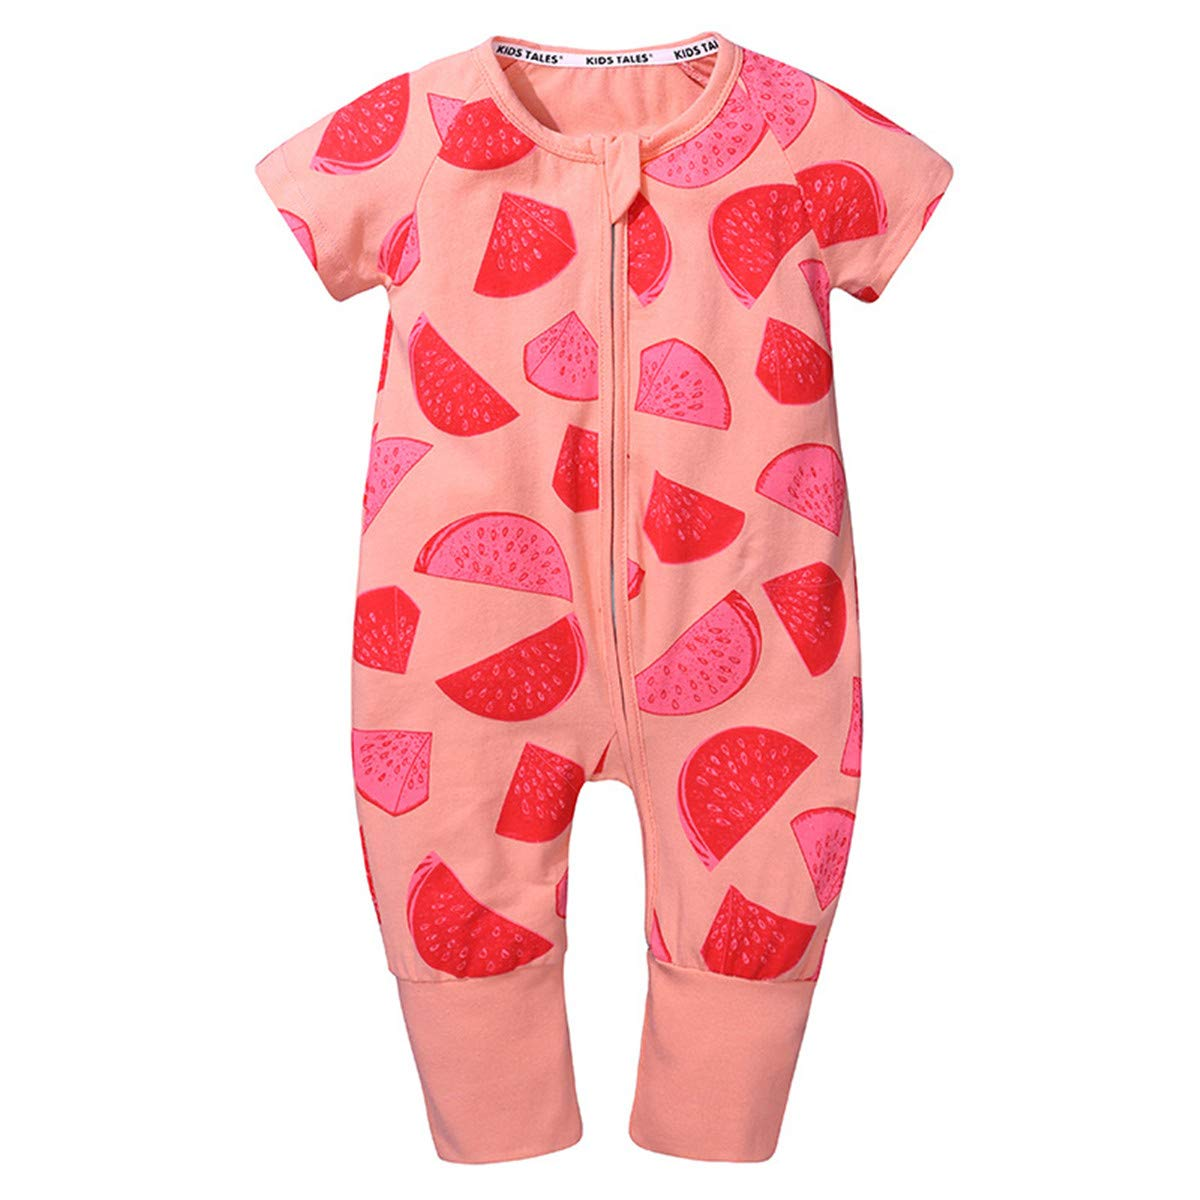 Amberetech Infant Toddler Baby Boys Girls One-Piece Rompers Long Jumpsuit Summer Pajama Sleeper Outfit (Style N - Watermelon (Pink), for 3-6 Months) by Amberetech